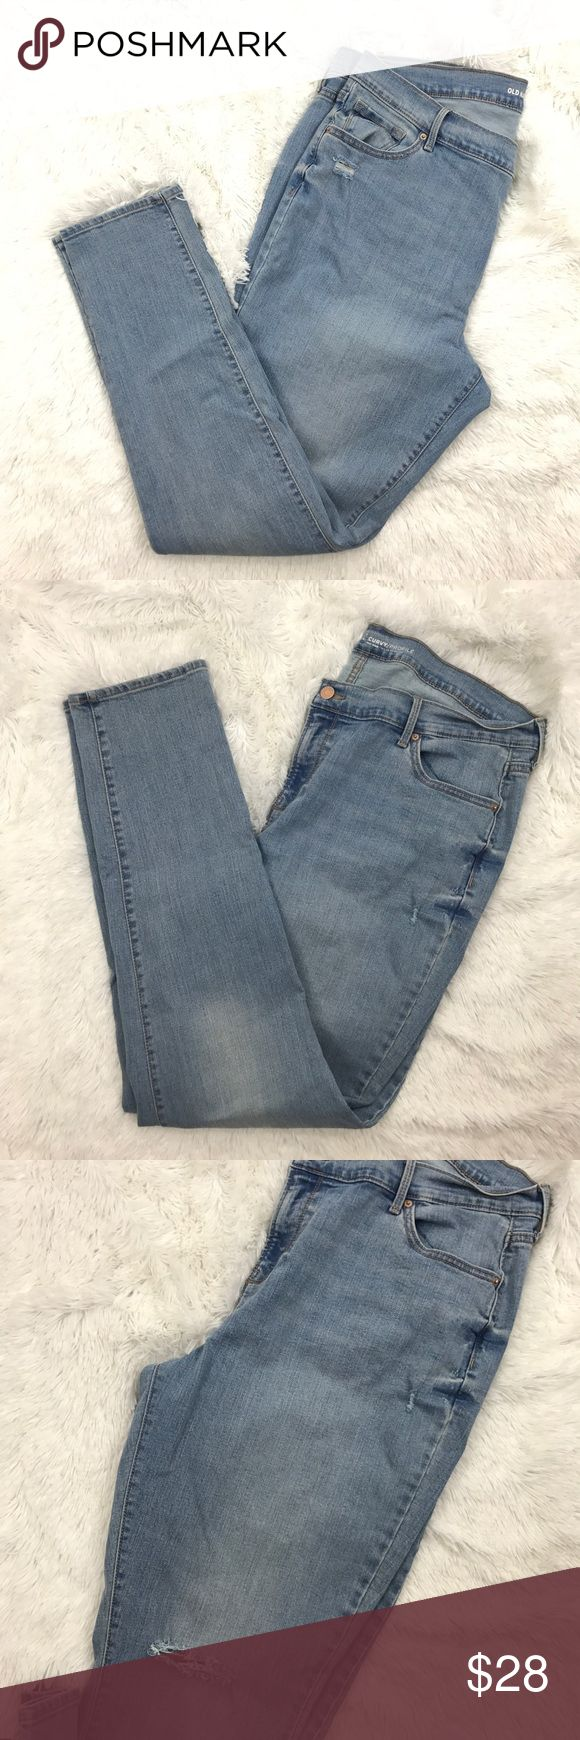 "Old Navy Curvy mid rise skinny jeans Sz 18L 349 Old Navy Light Wash Distressed Skinny Denim Jeans Curvy Profile Sz 18 Long   Measurements: Waist:  20.5""  Flat Across  Rise:  11.5""  Long Inseam:  32.5""  Long  In good preowned condition with no known flaws and light overall wear. Old Navy Jeans Skinny"